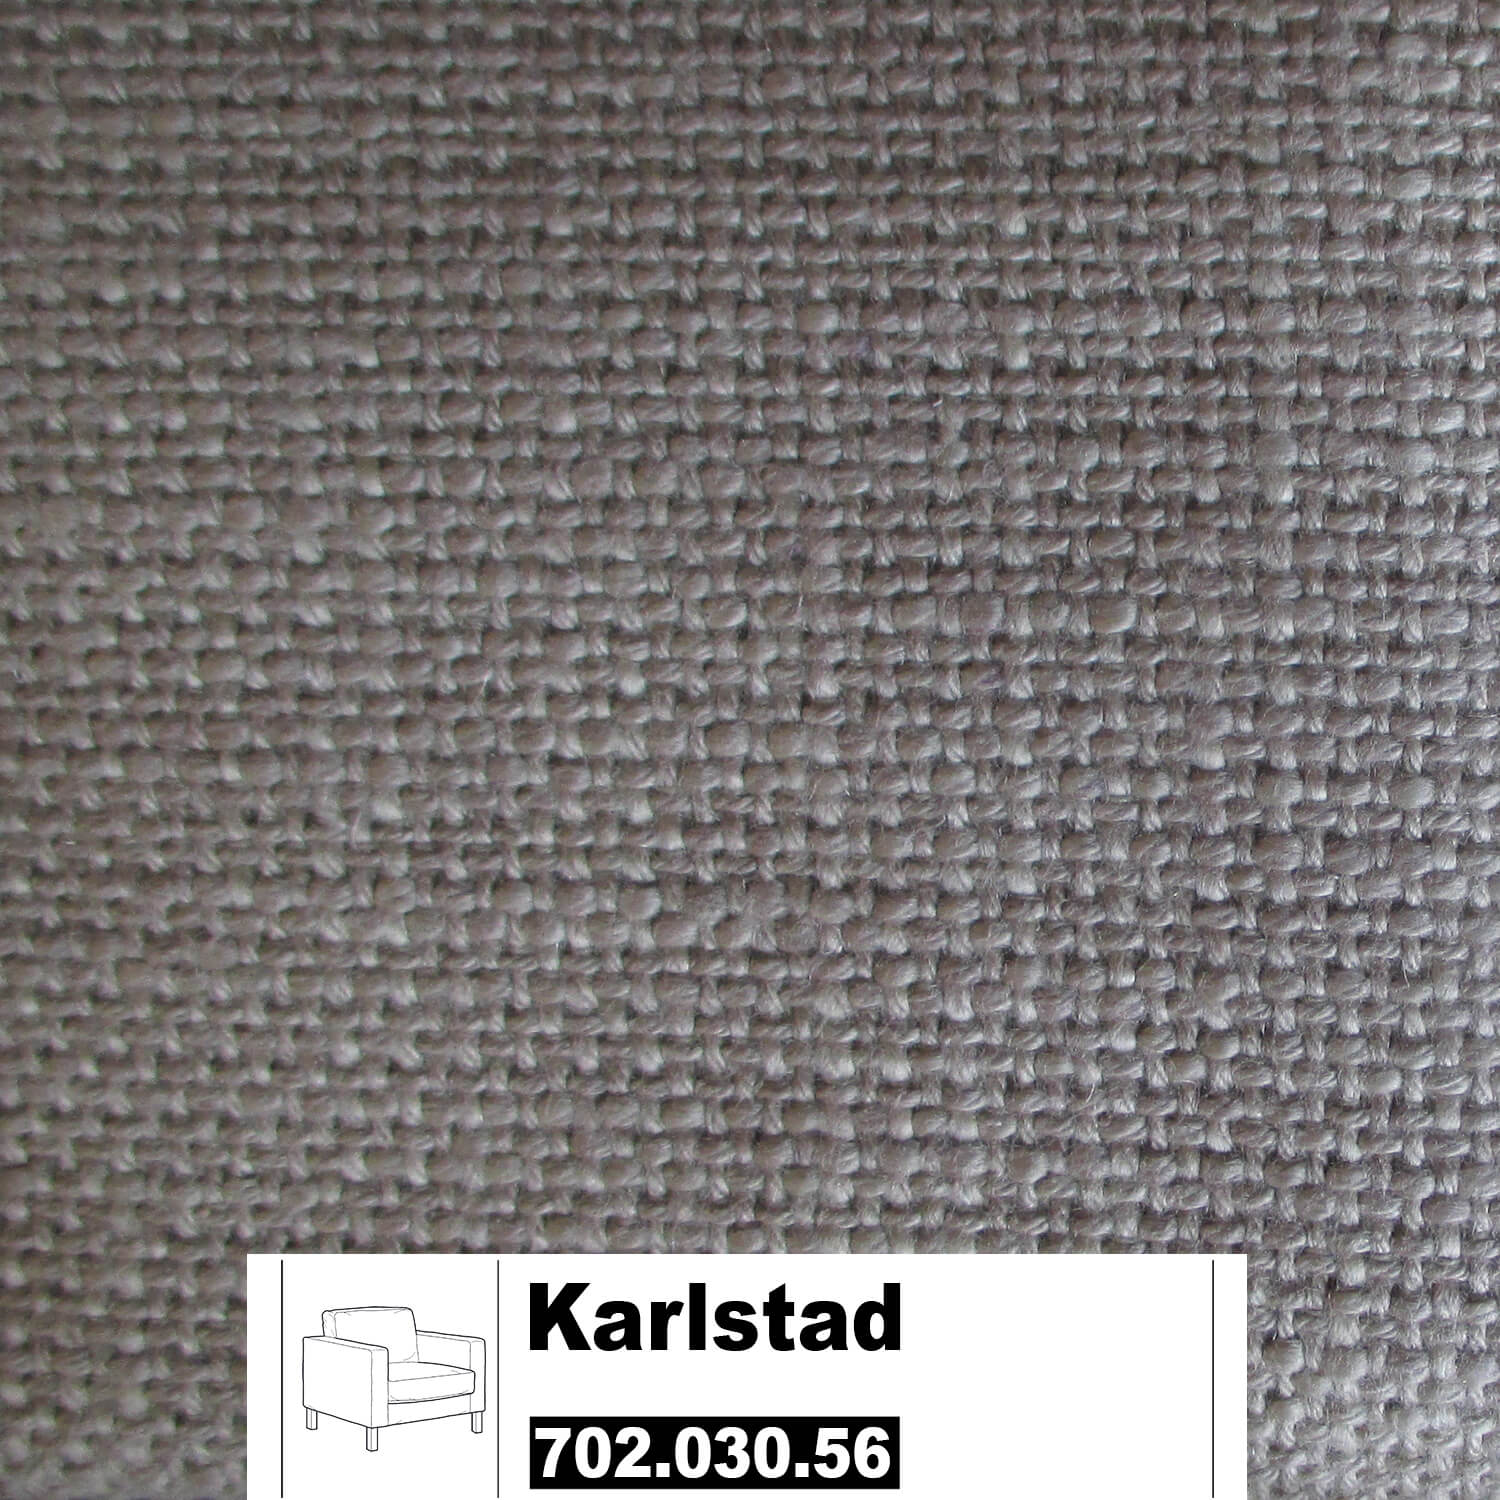 ikea karlstad bezug f r sessel in lind beige. Black Bedroom Furniture Sets. Home Design Ideas